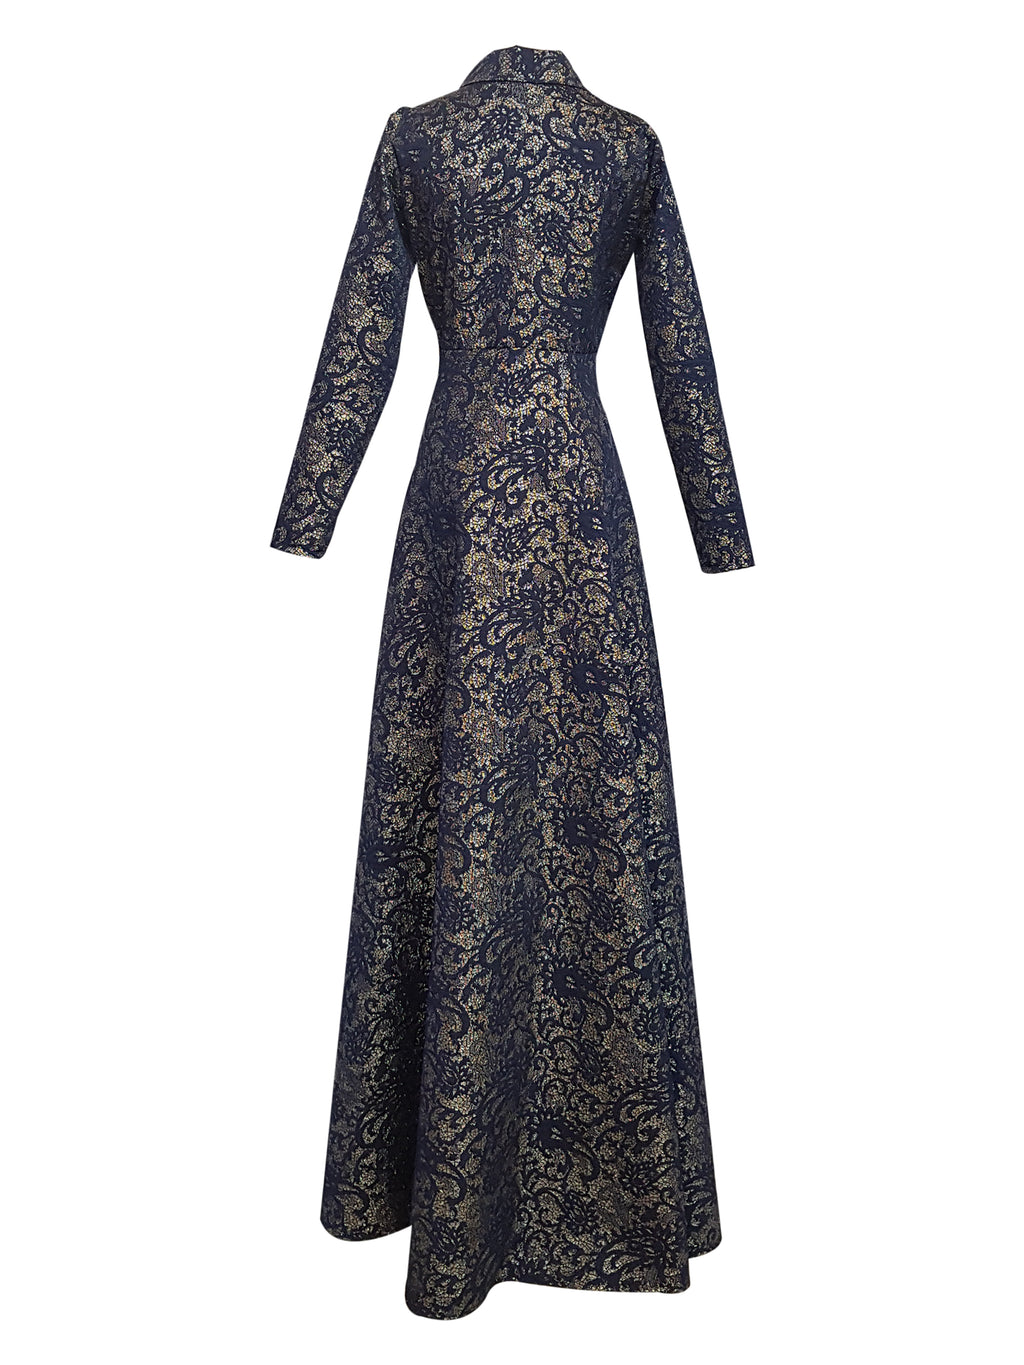 Jacquard Evening Gown